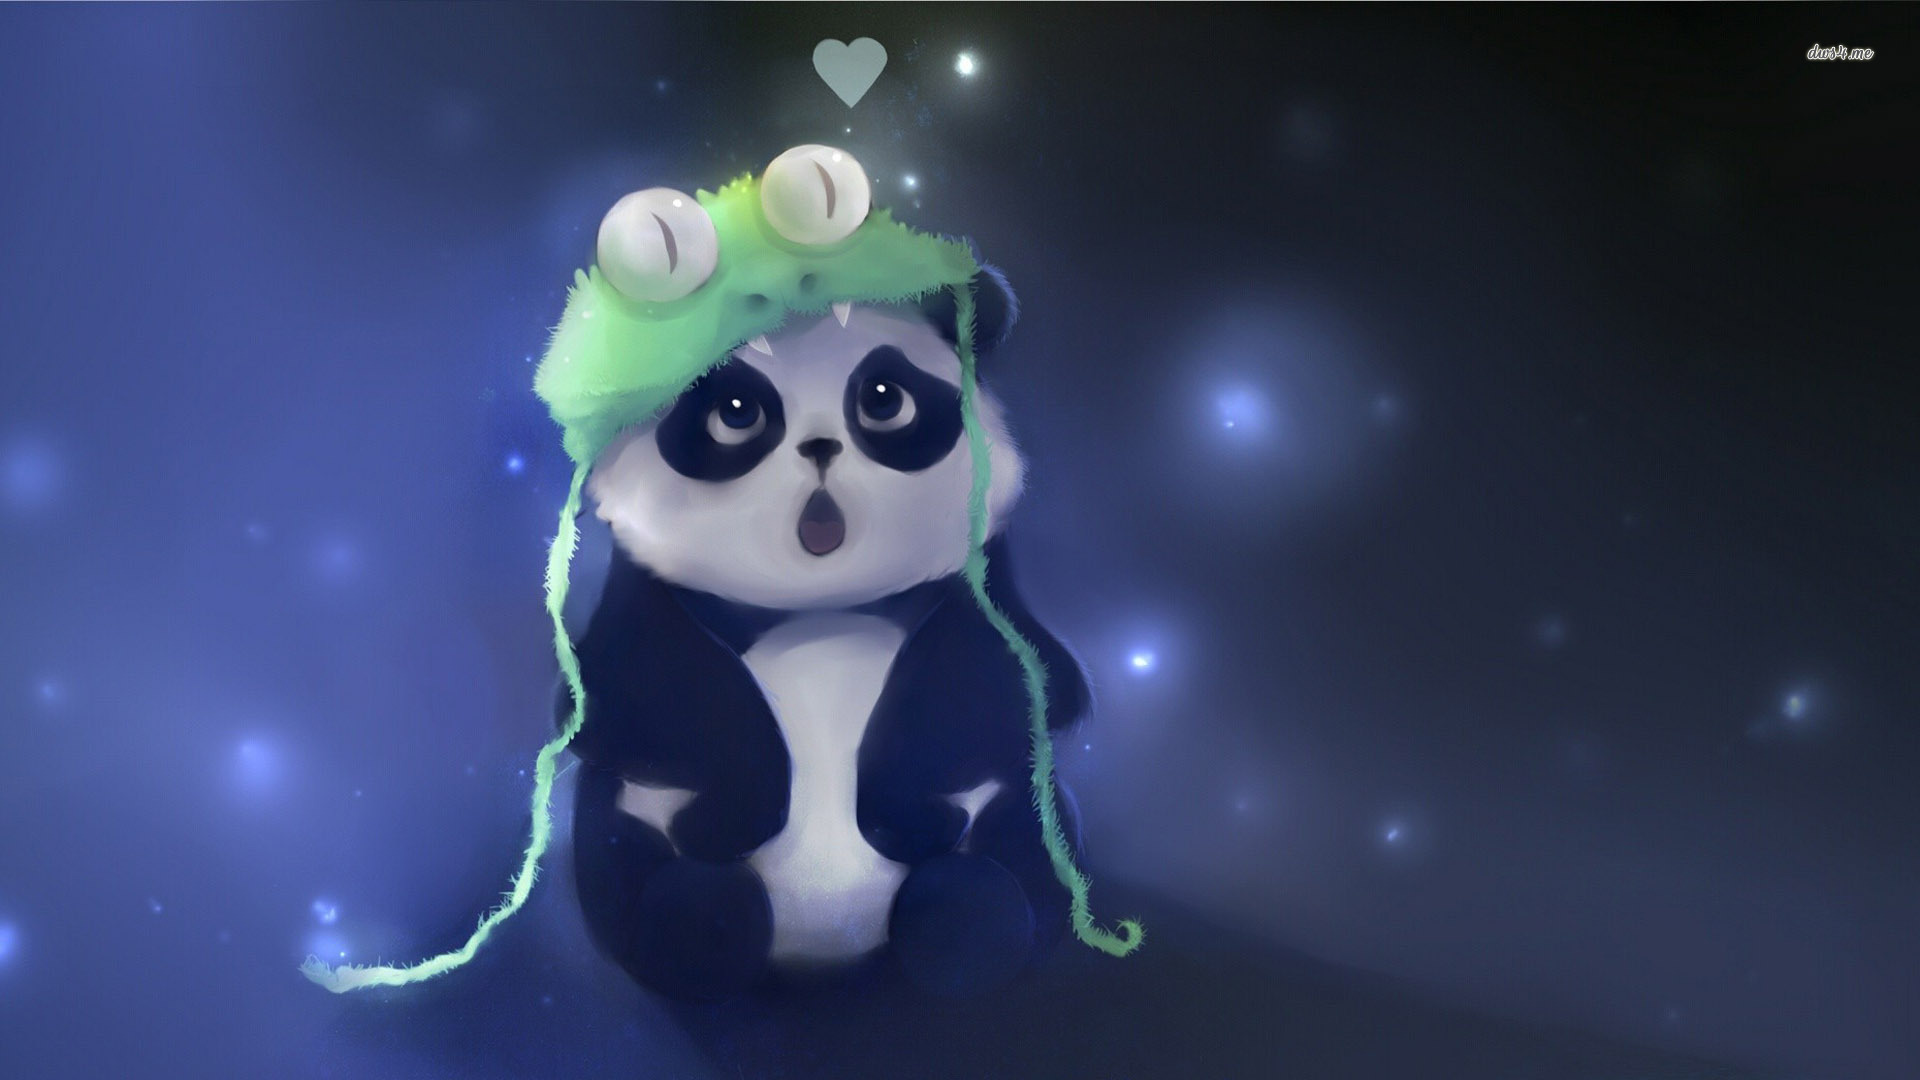 Animals for Gt Cute Baby Panda Wallpaper Ipad 1920x1080px